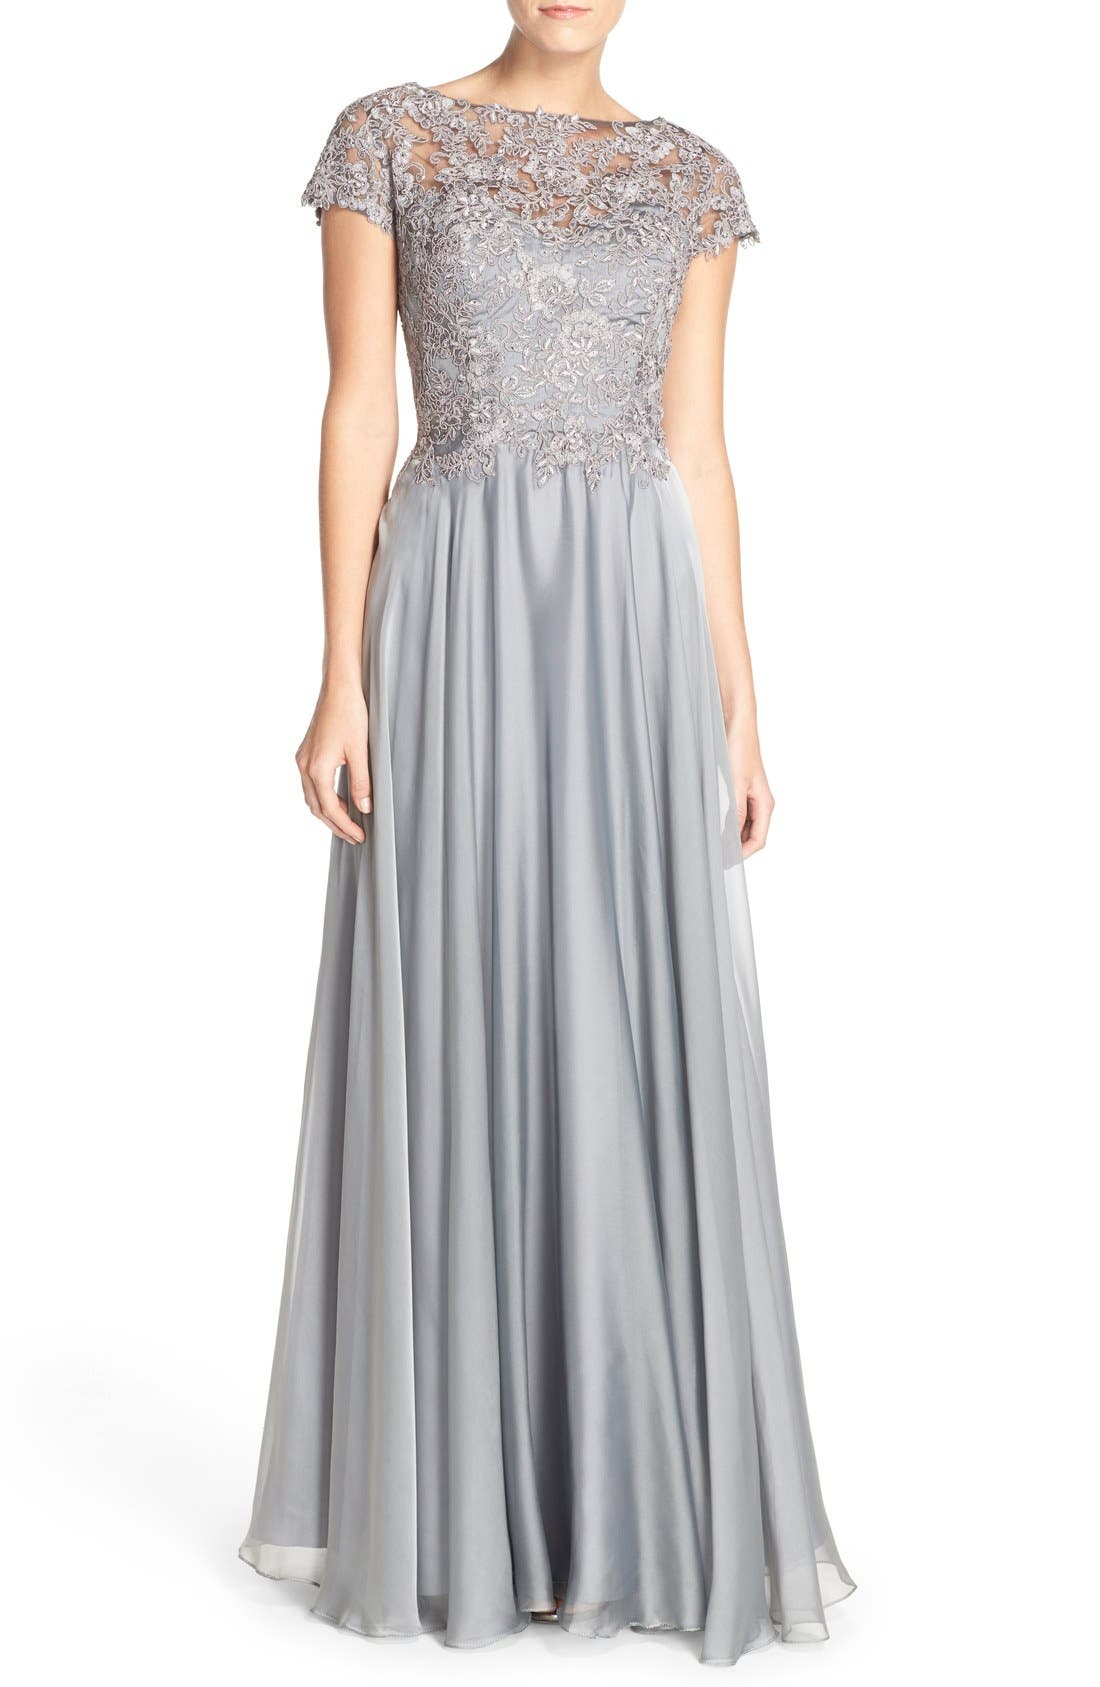 1930s Evening Dresses | Old Hollywood Silver Screen Dresses Womens La Femme Embellished Lace  Satin Ballgown Size 20 similar to 20W-22W - Grey $450.00 AT vintagedancer.com